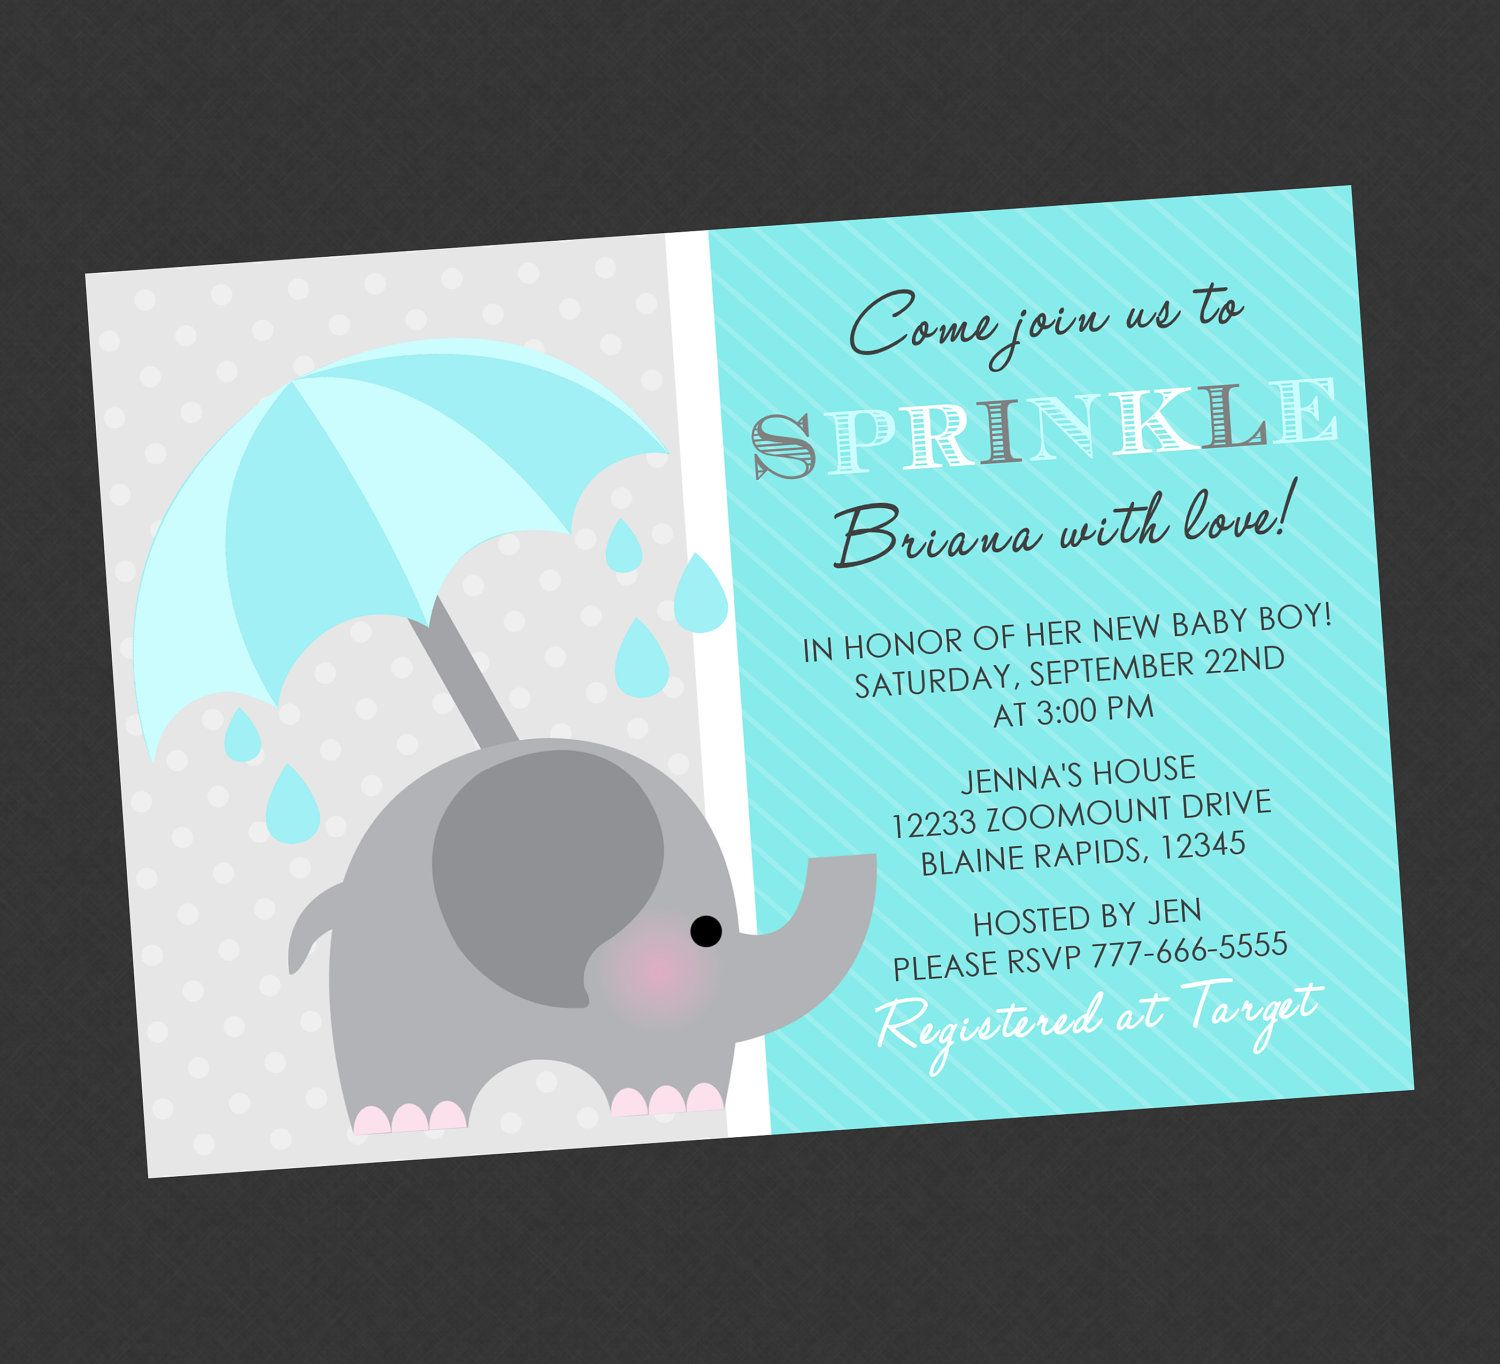 Elephant sprinkle baby shower invitation teal 1299 via etsy elephant sprinkle baby shower invitation teal 1299 via etsy kristyandbryce Images